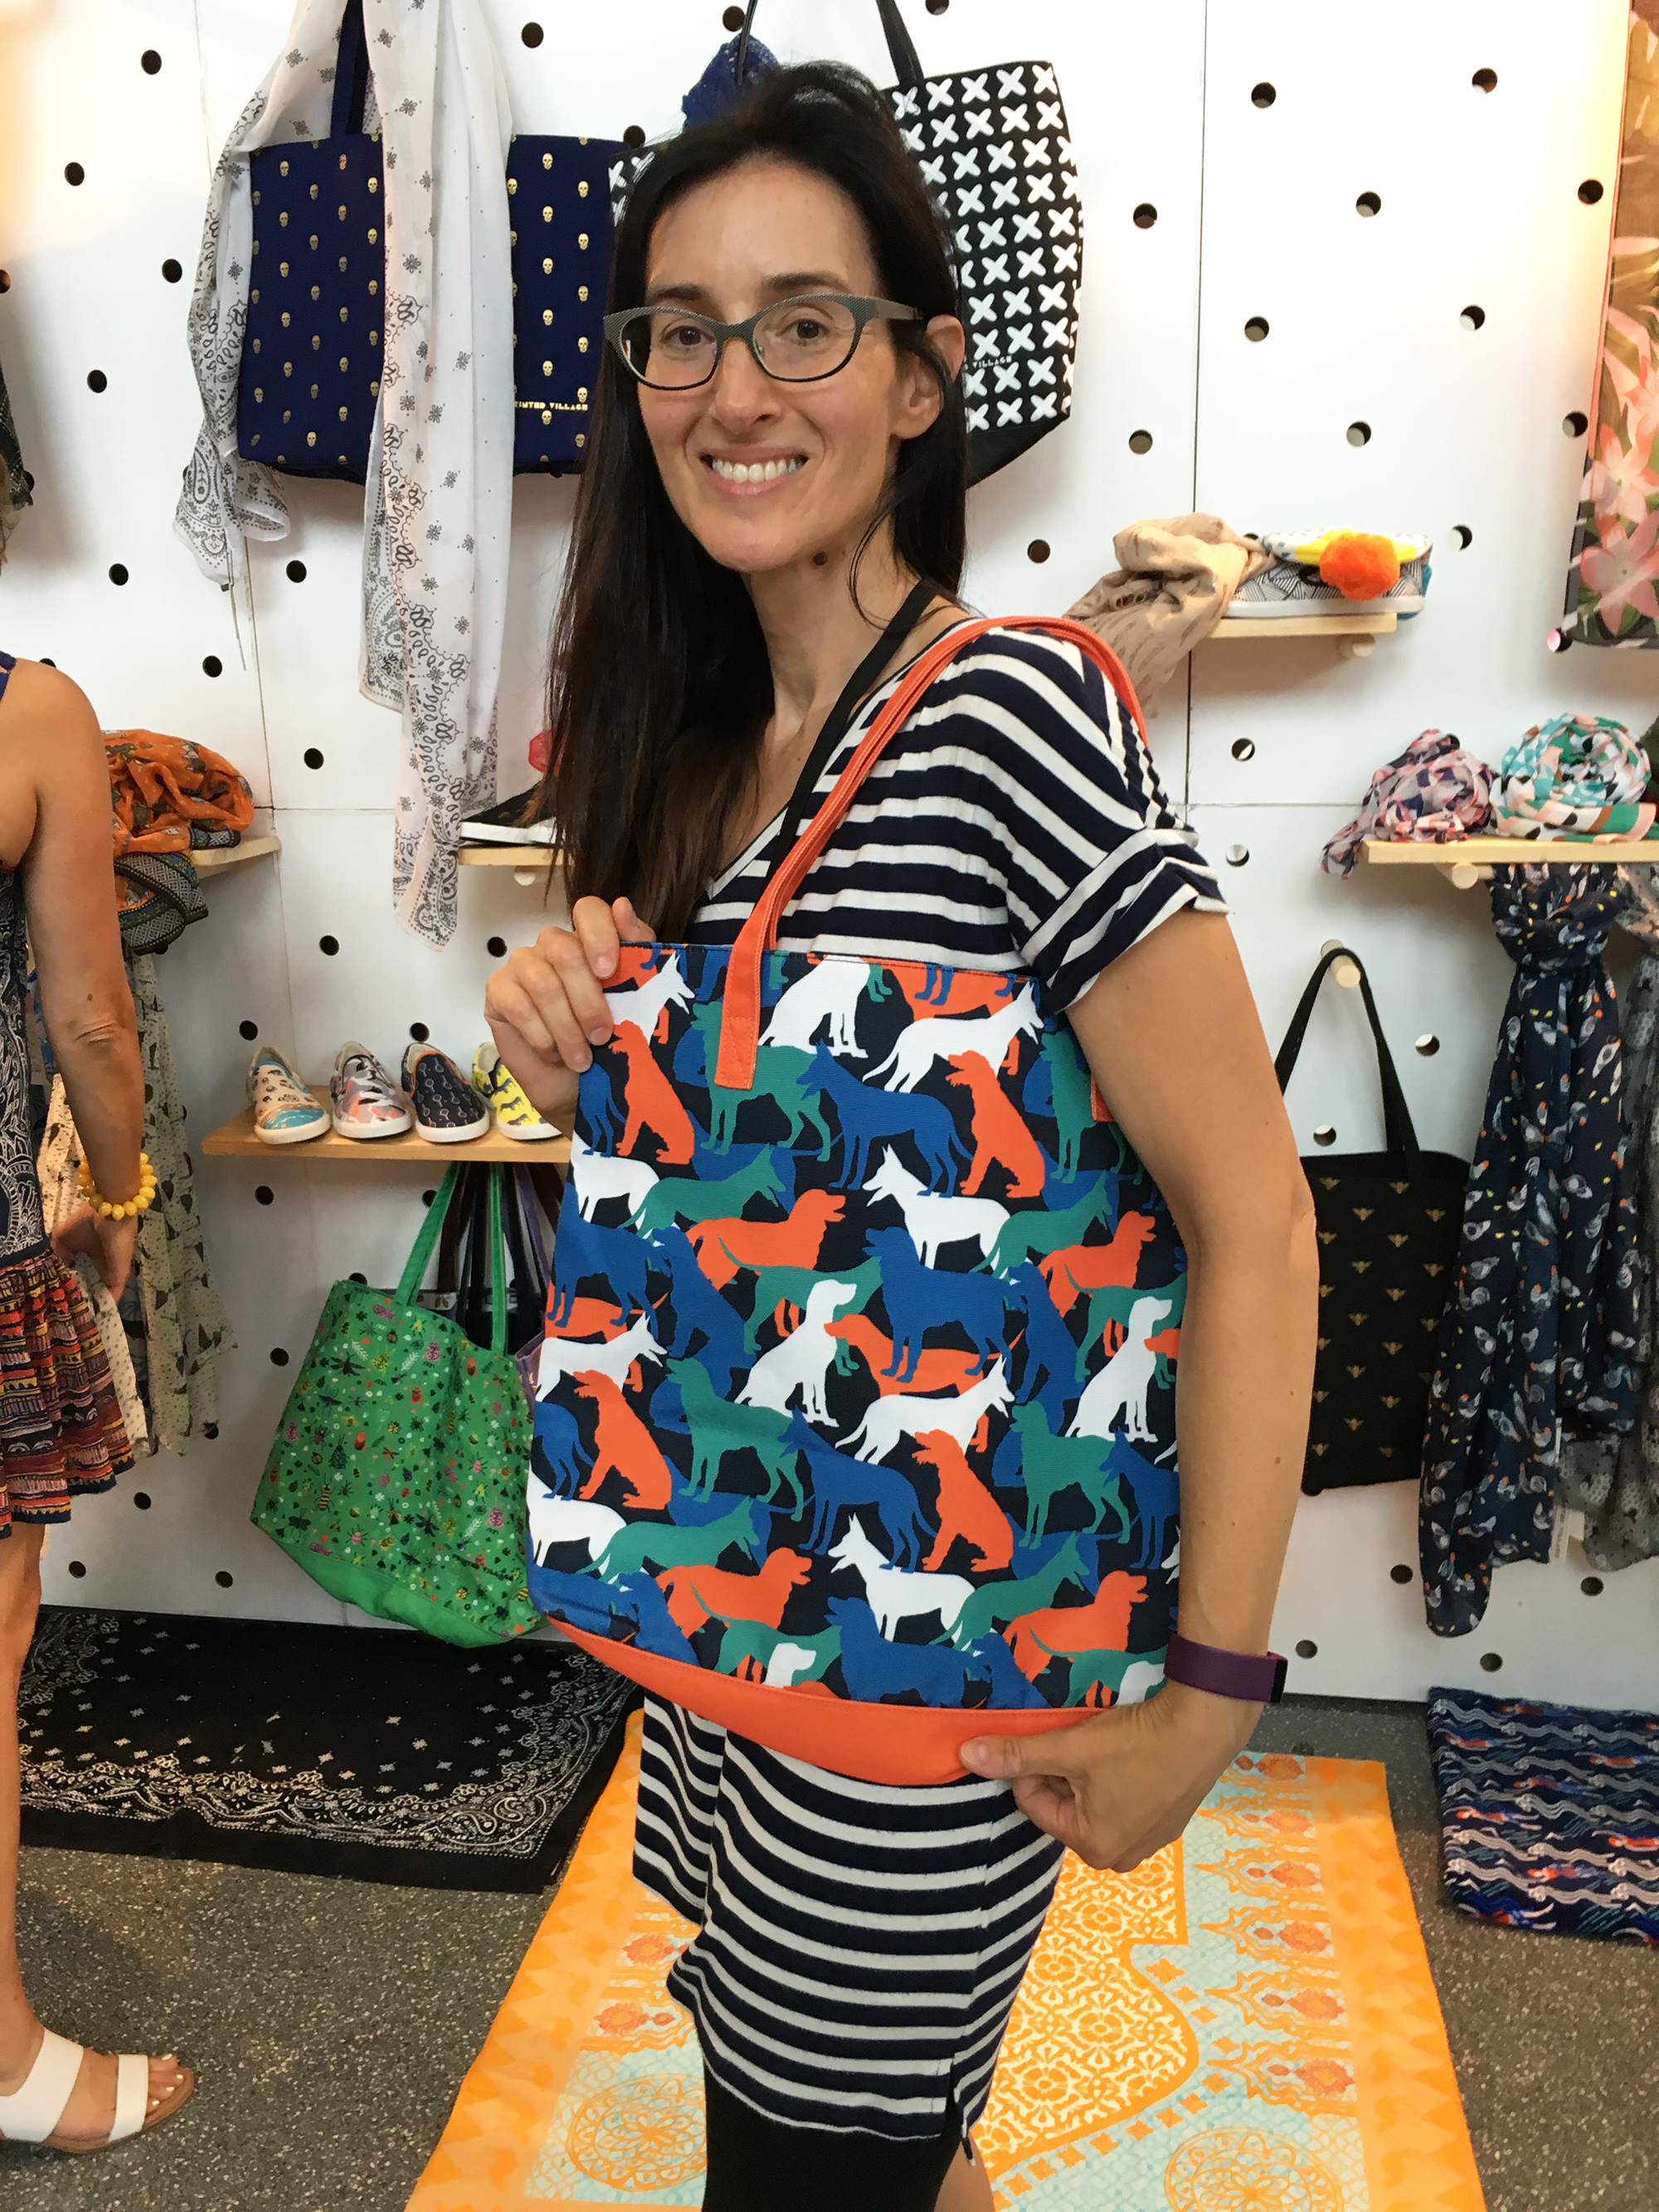 at the Printed Village booth posing with my dog pattern tote bag!